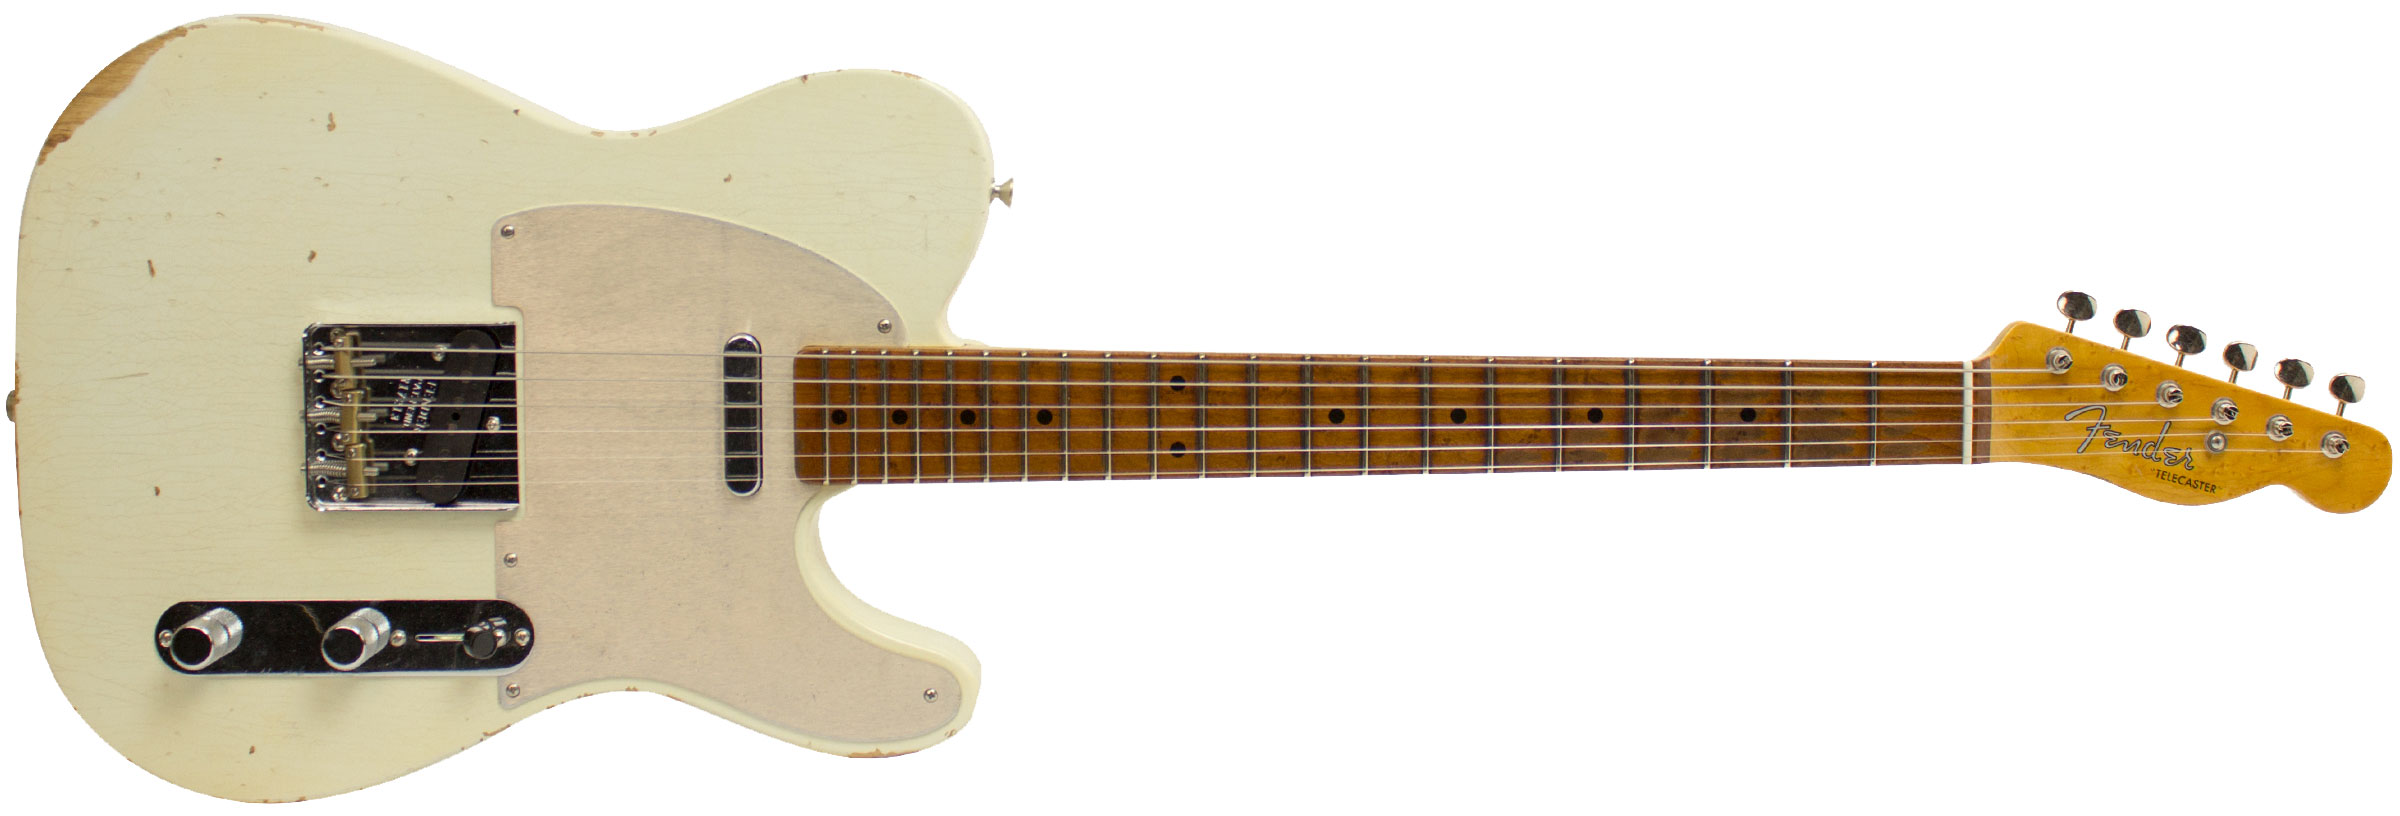 GUITARRA FENDER 923 9822 - TELECASTER ROASTED FRETBOARD RELIC C. BUILT - 805 - AGED OLYMPIC WHITE